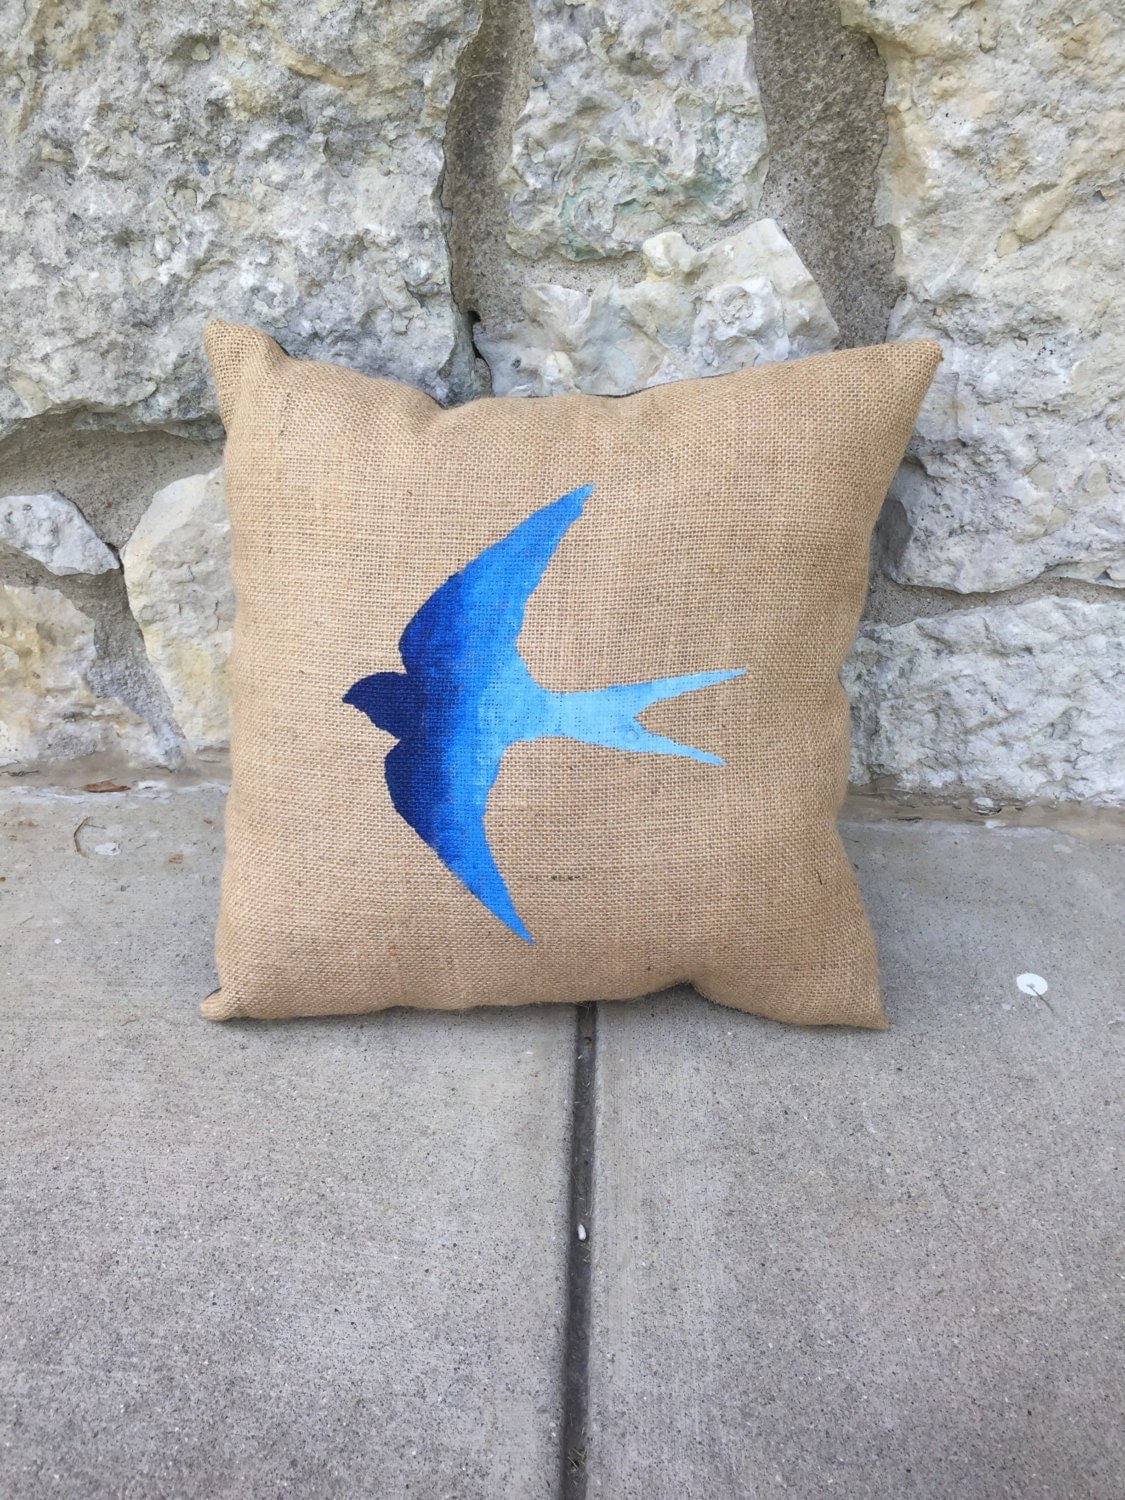 Shabby Chic Burlap Pillows : Shabby chic burlap decorative pillow with painted ombre blue